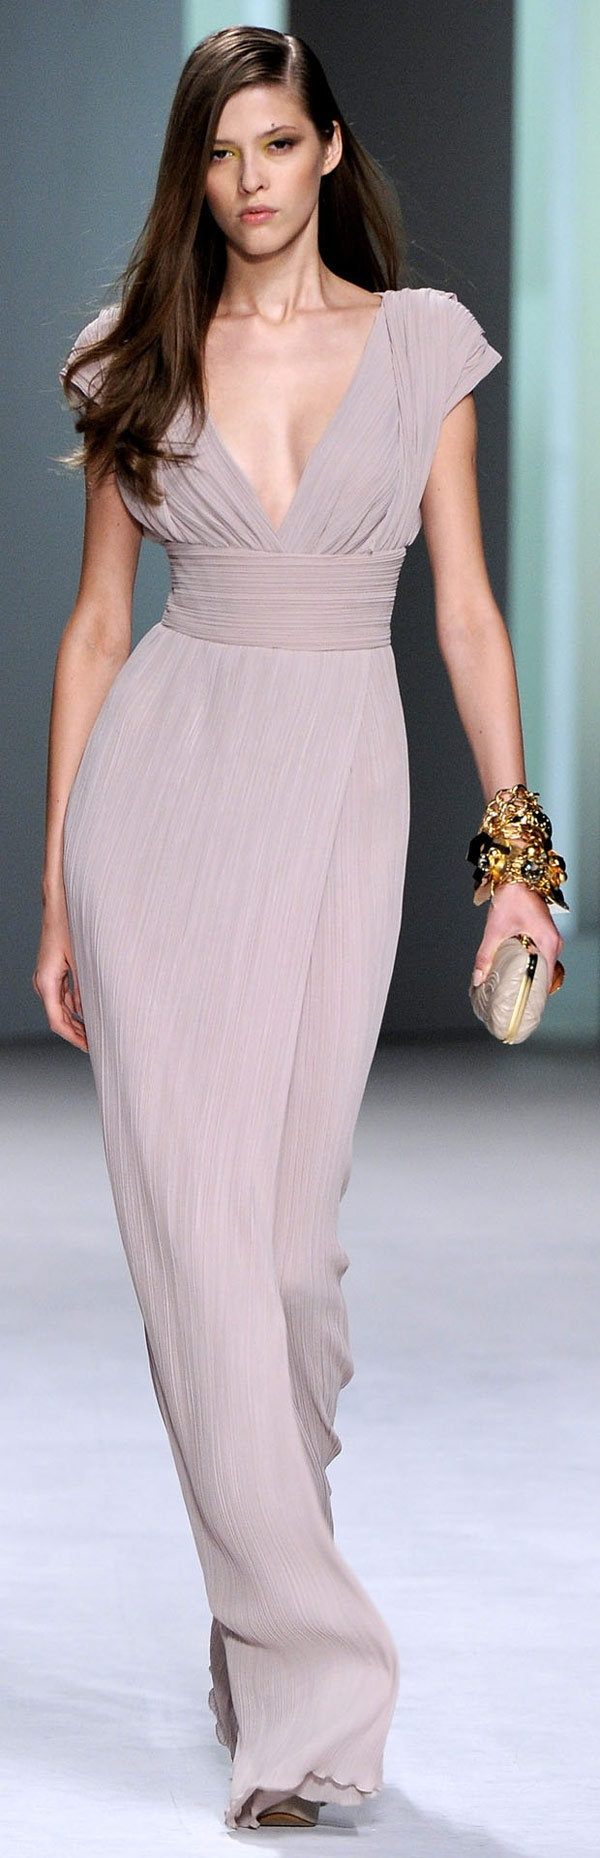 Elie Saab Spring 2011 in a pale lilac-pink dress